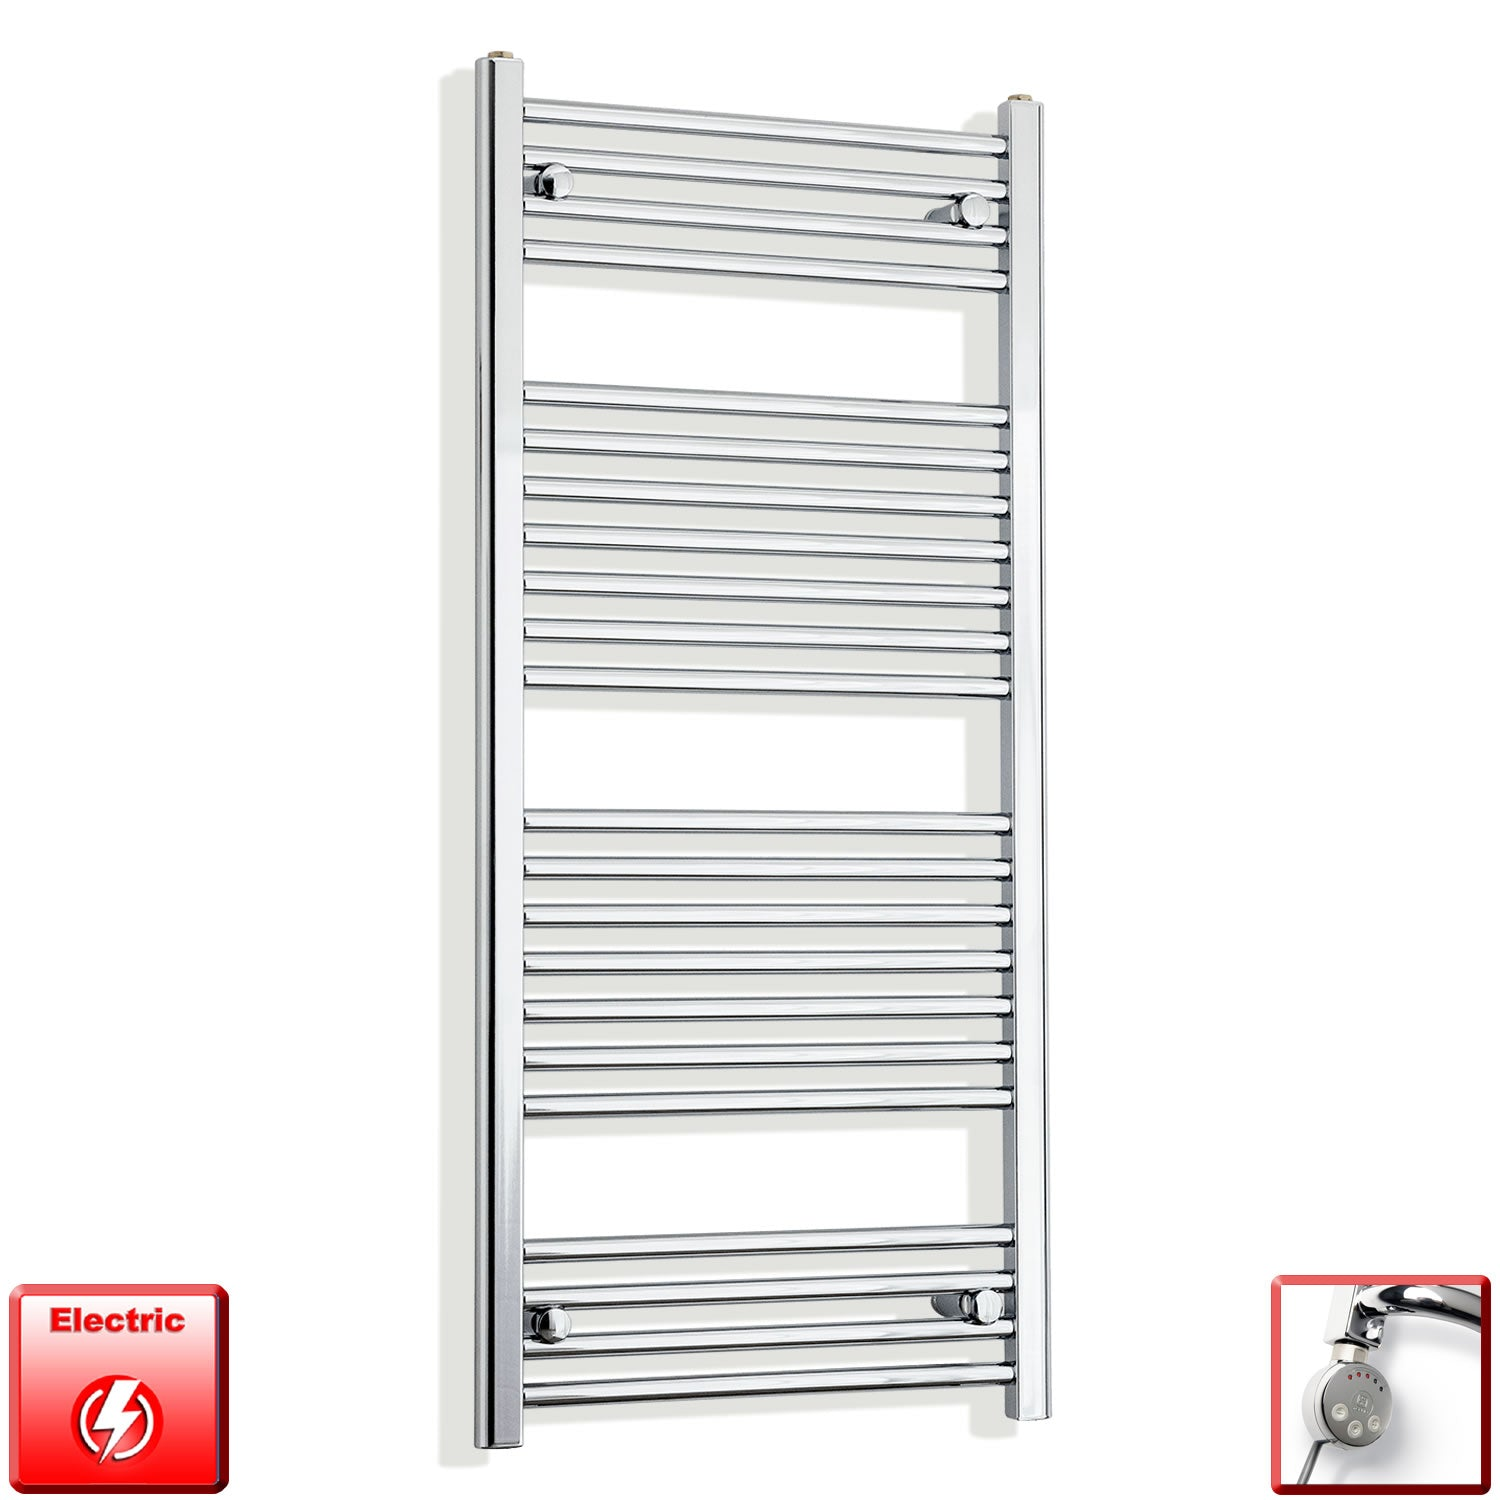 600mm Wide 1200mm High Flat Chrome Pre-Filled Electric Heated Towel Rail Radiator HTR,MEG Thermostatic Element